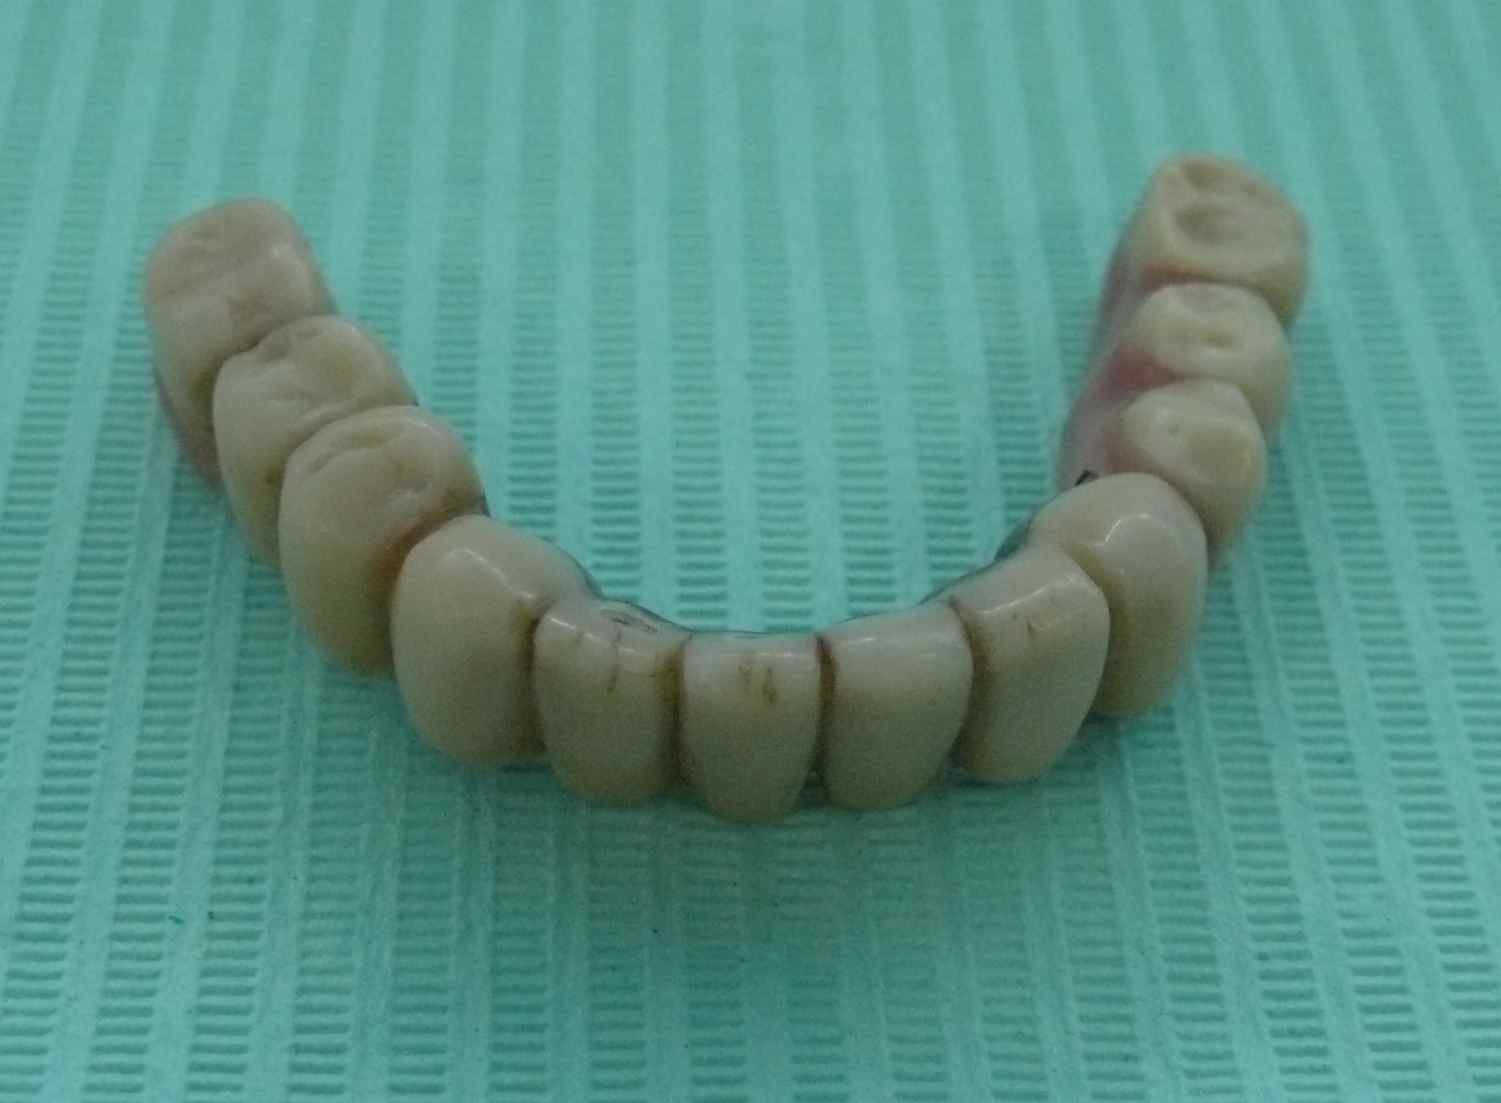 A full lower denture from above